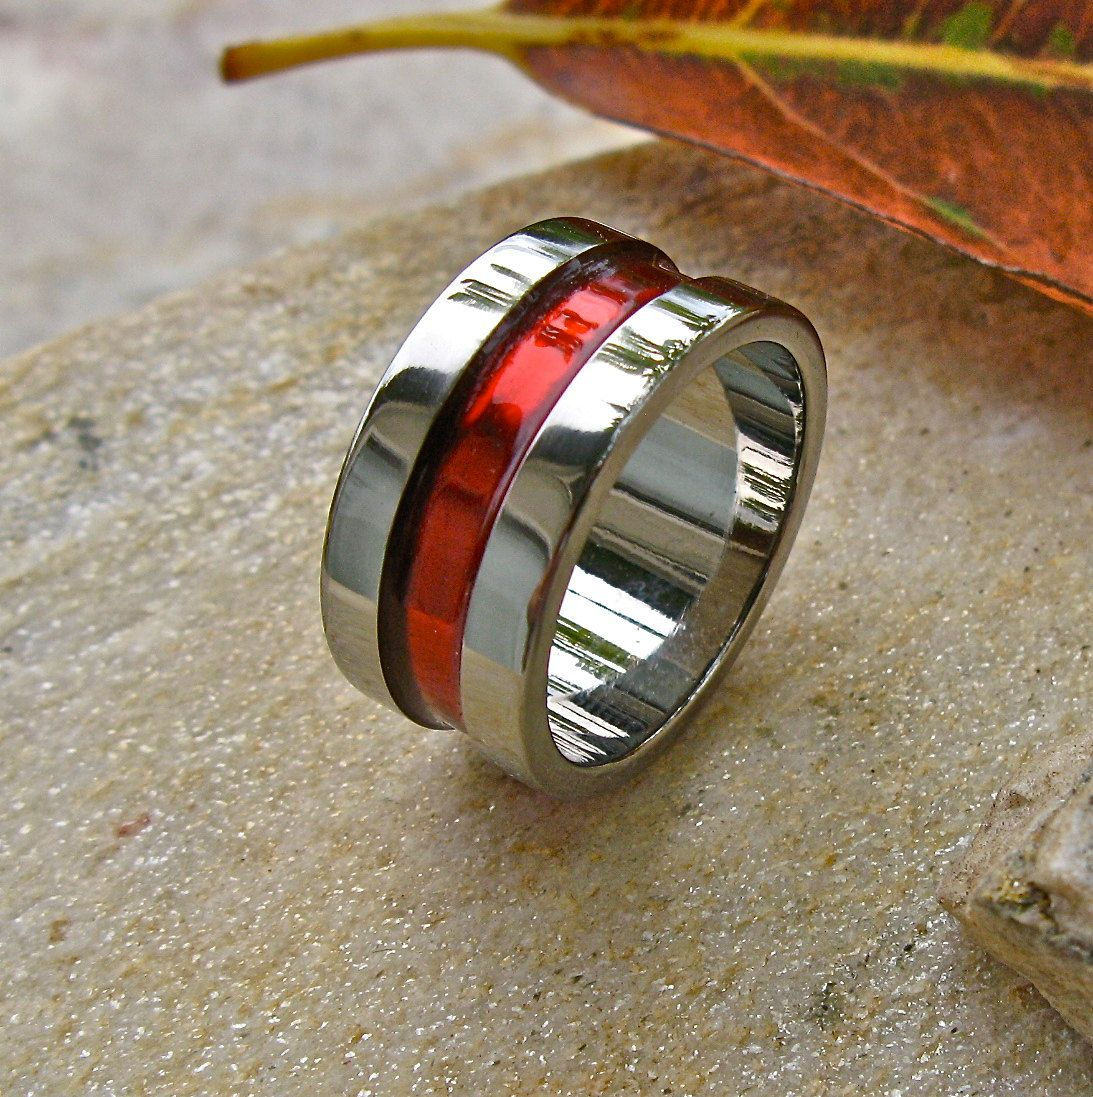 Firefighter S Thin Red Line Titanium Wedding Band Etsy Firefighter Wedding Titanium Wedding Rings Titanium Wedding Band